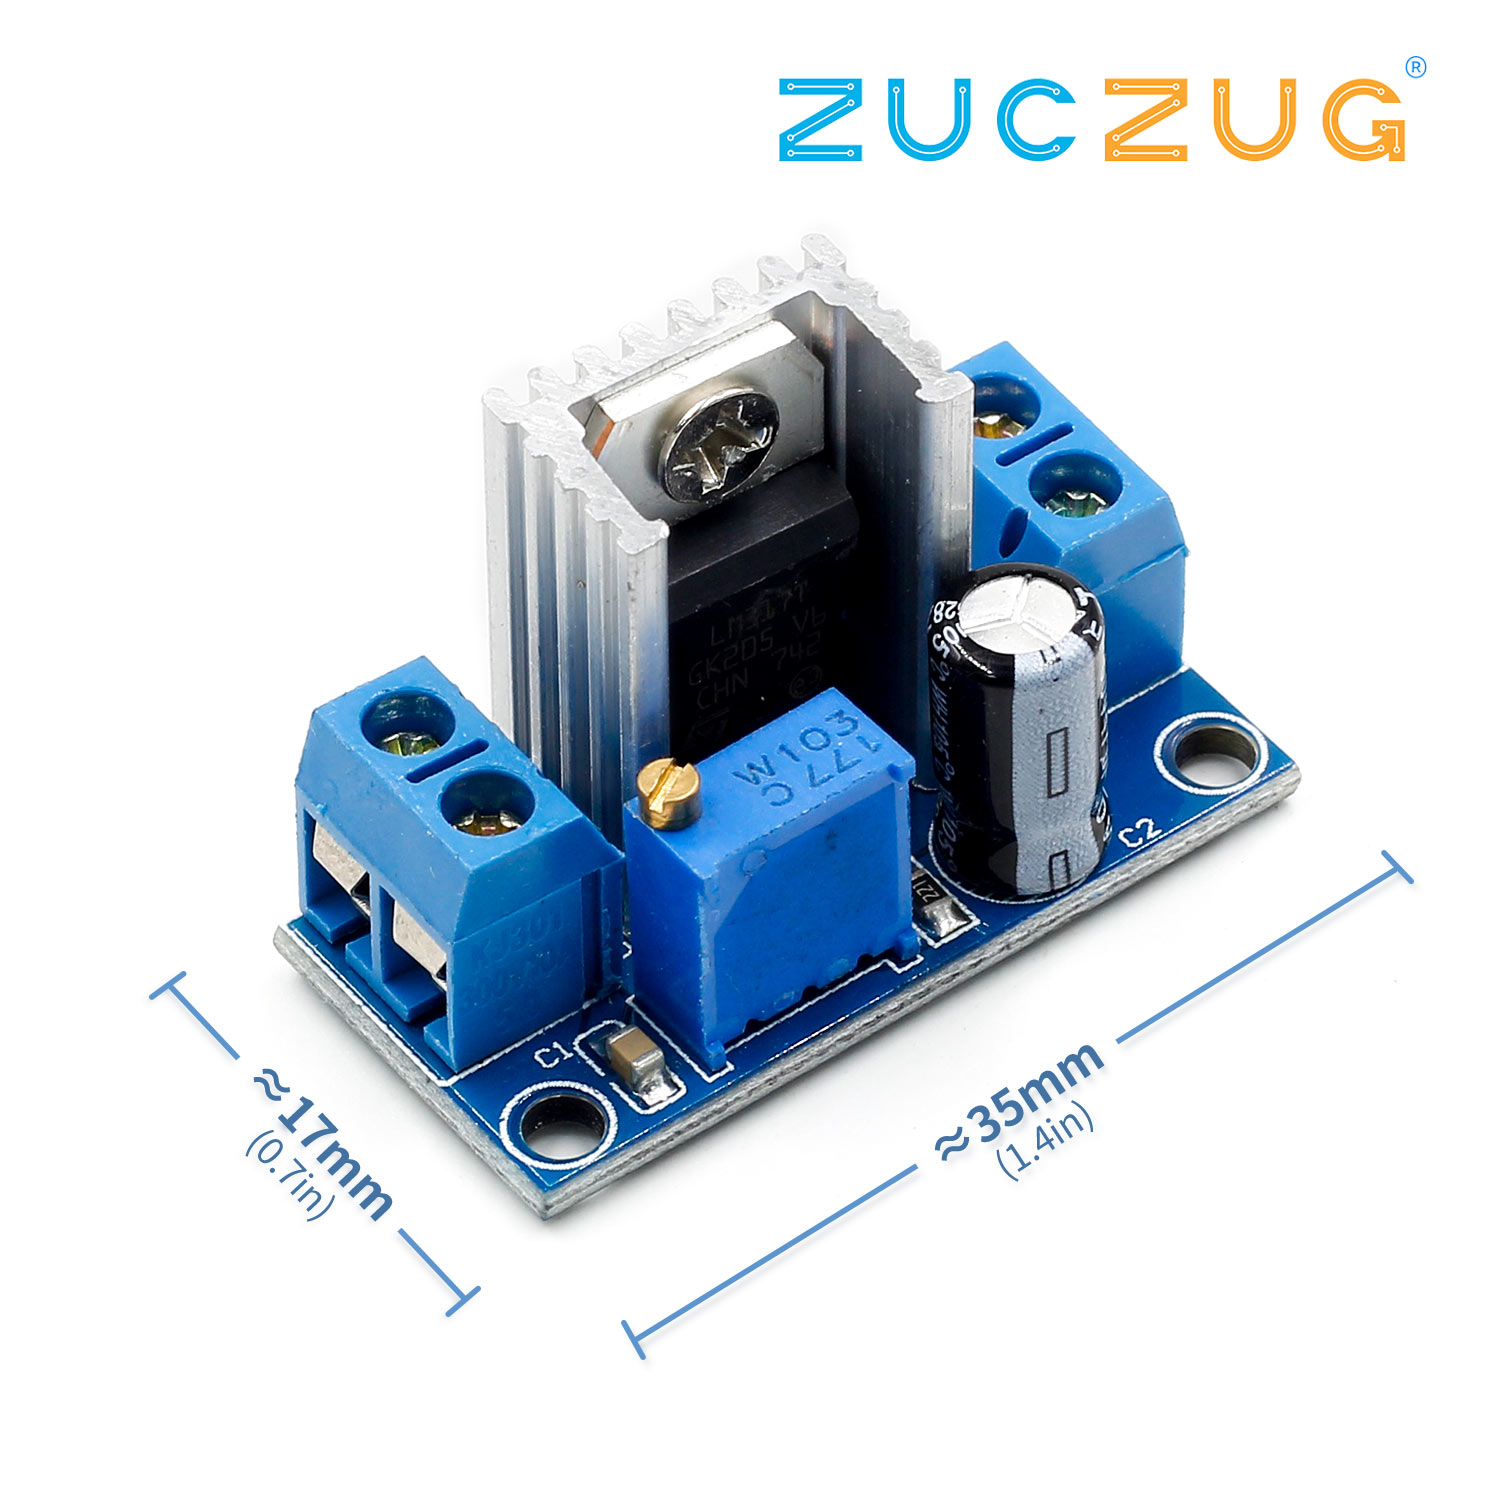 LM317 Adjustable Voltage Linear Regulator Power Supply LM317 DC-DC 4.2-40V To 1.2-37V Step Down Buck Converter Board Module